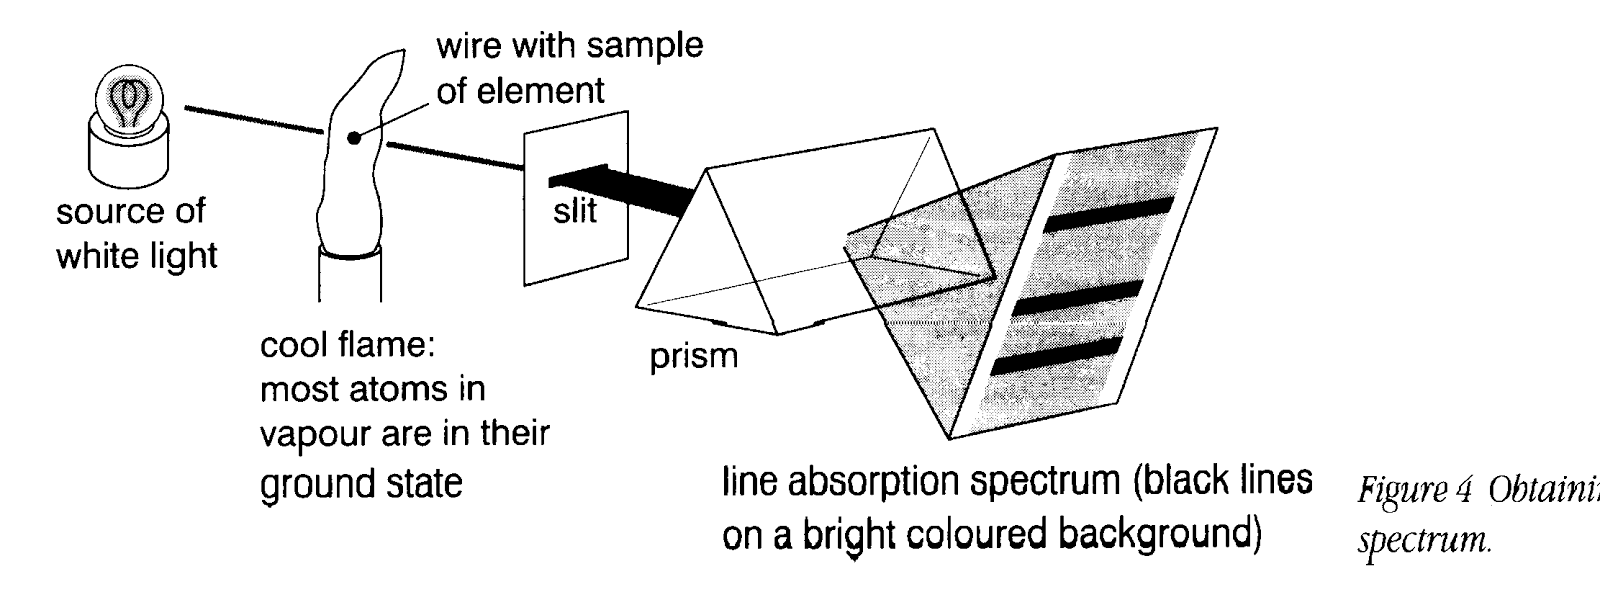 An atomic spectrum is light the emitted or absorbed by